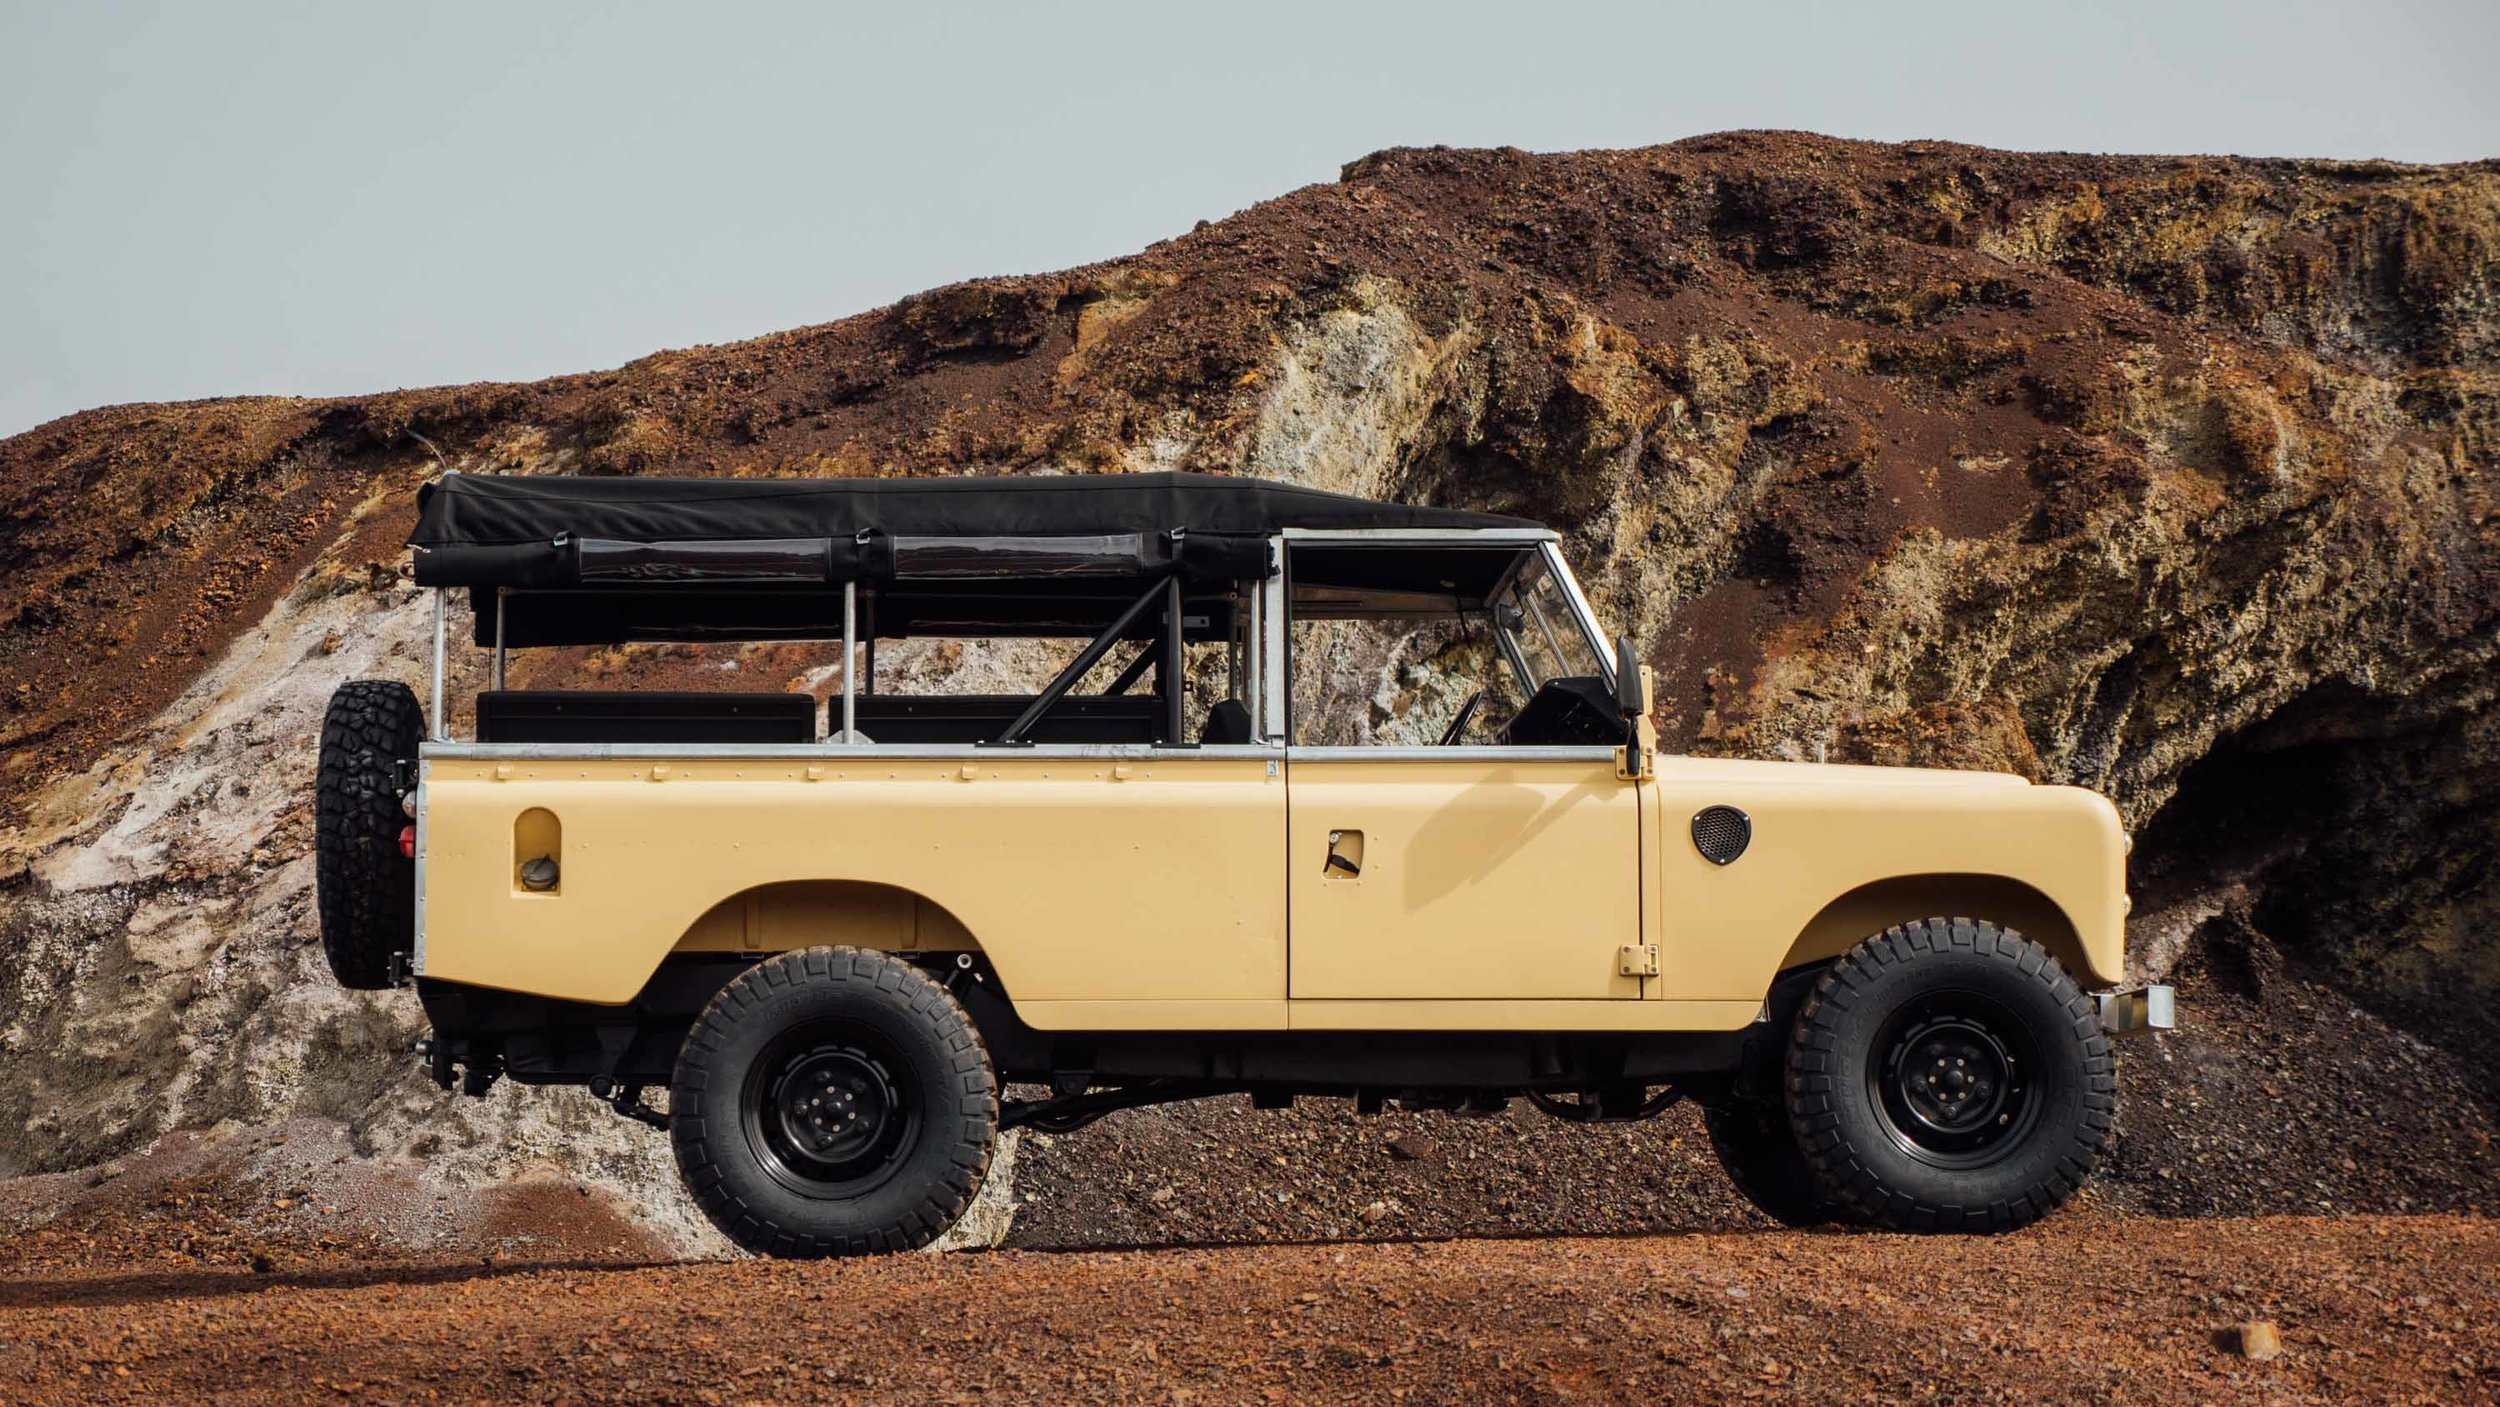 coolnvintage Land Rover S3 (152 of 207).jpg